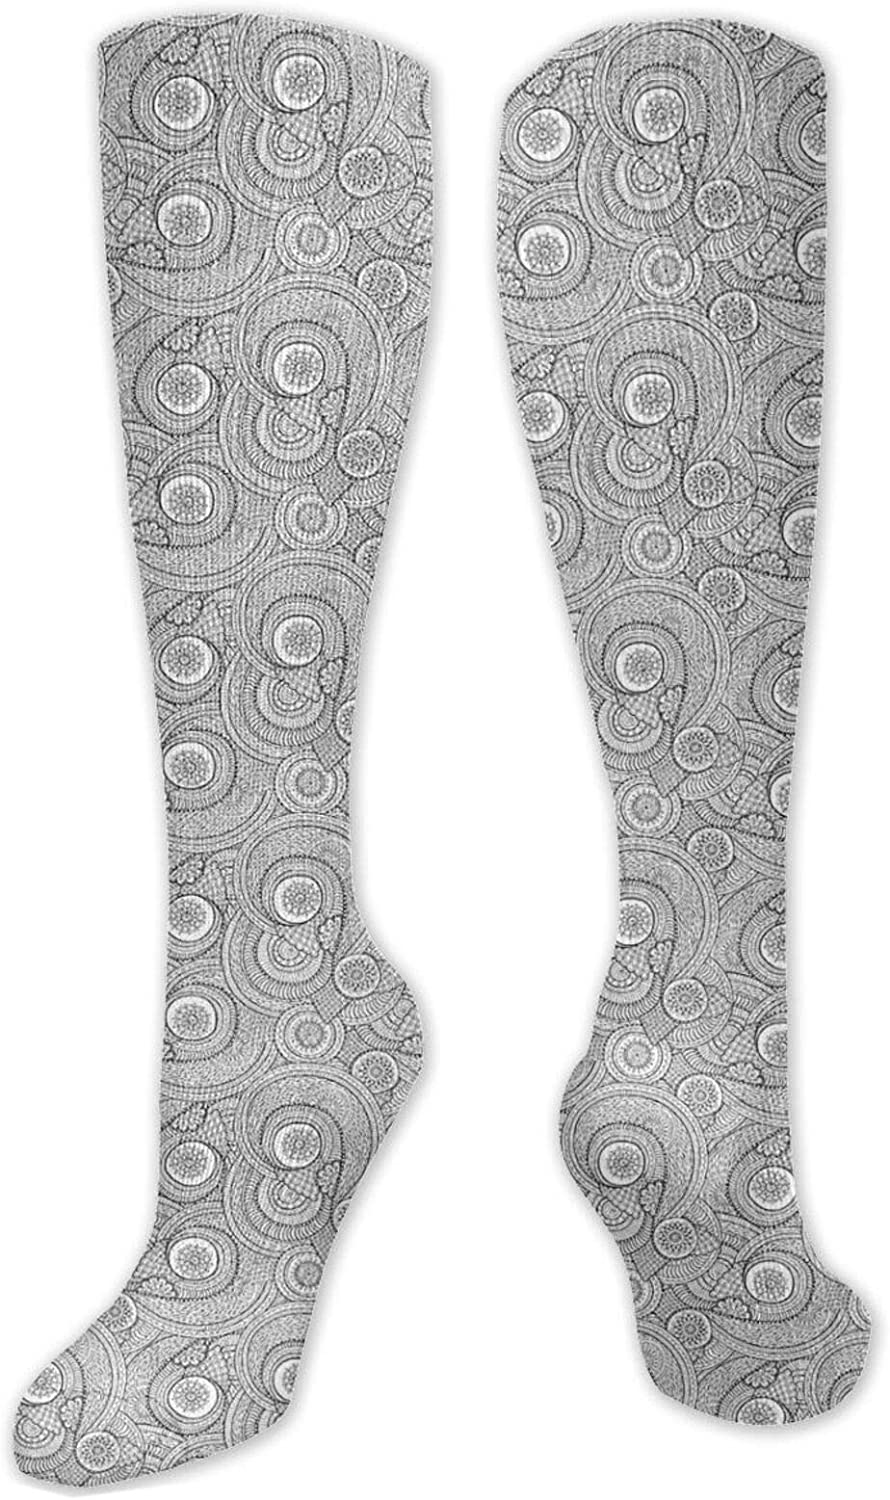 Compression High Socks-Asian Design Elements Traditional Paisley Floral Pattern Swirls Leaves Ethnic Motif Best for Running,Athletic,Hiking,Travel,Flight